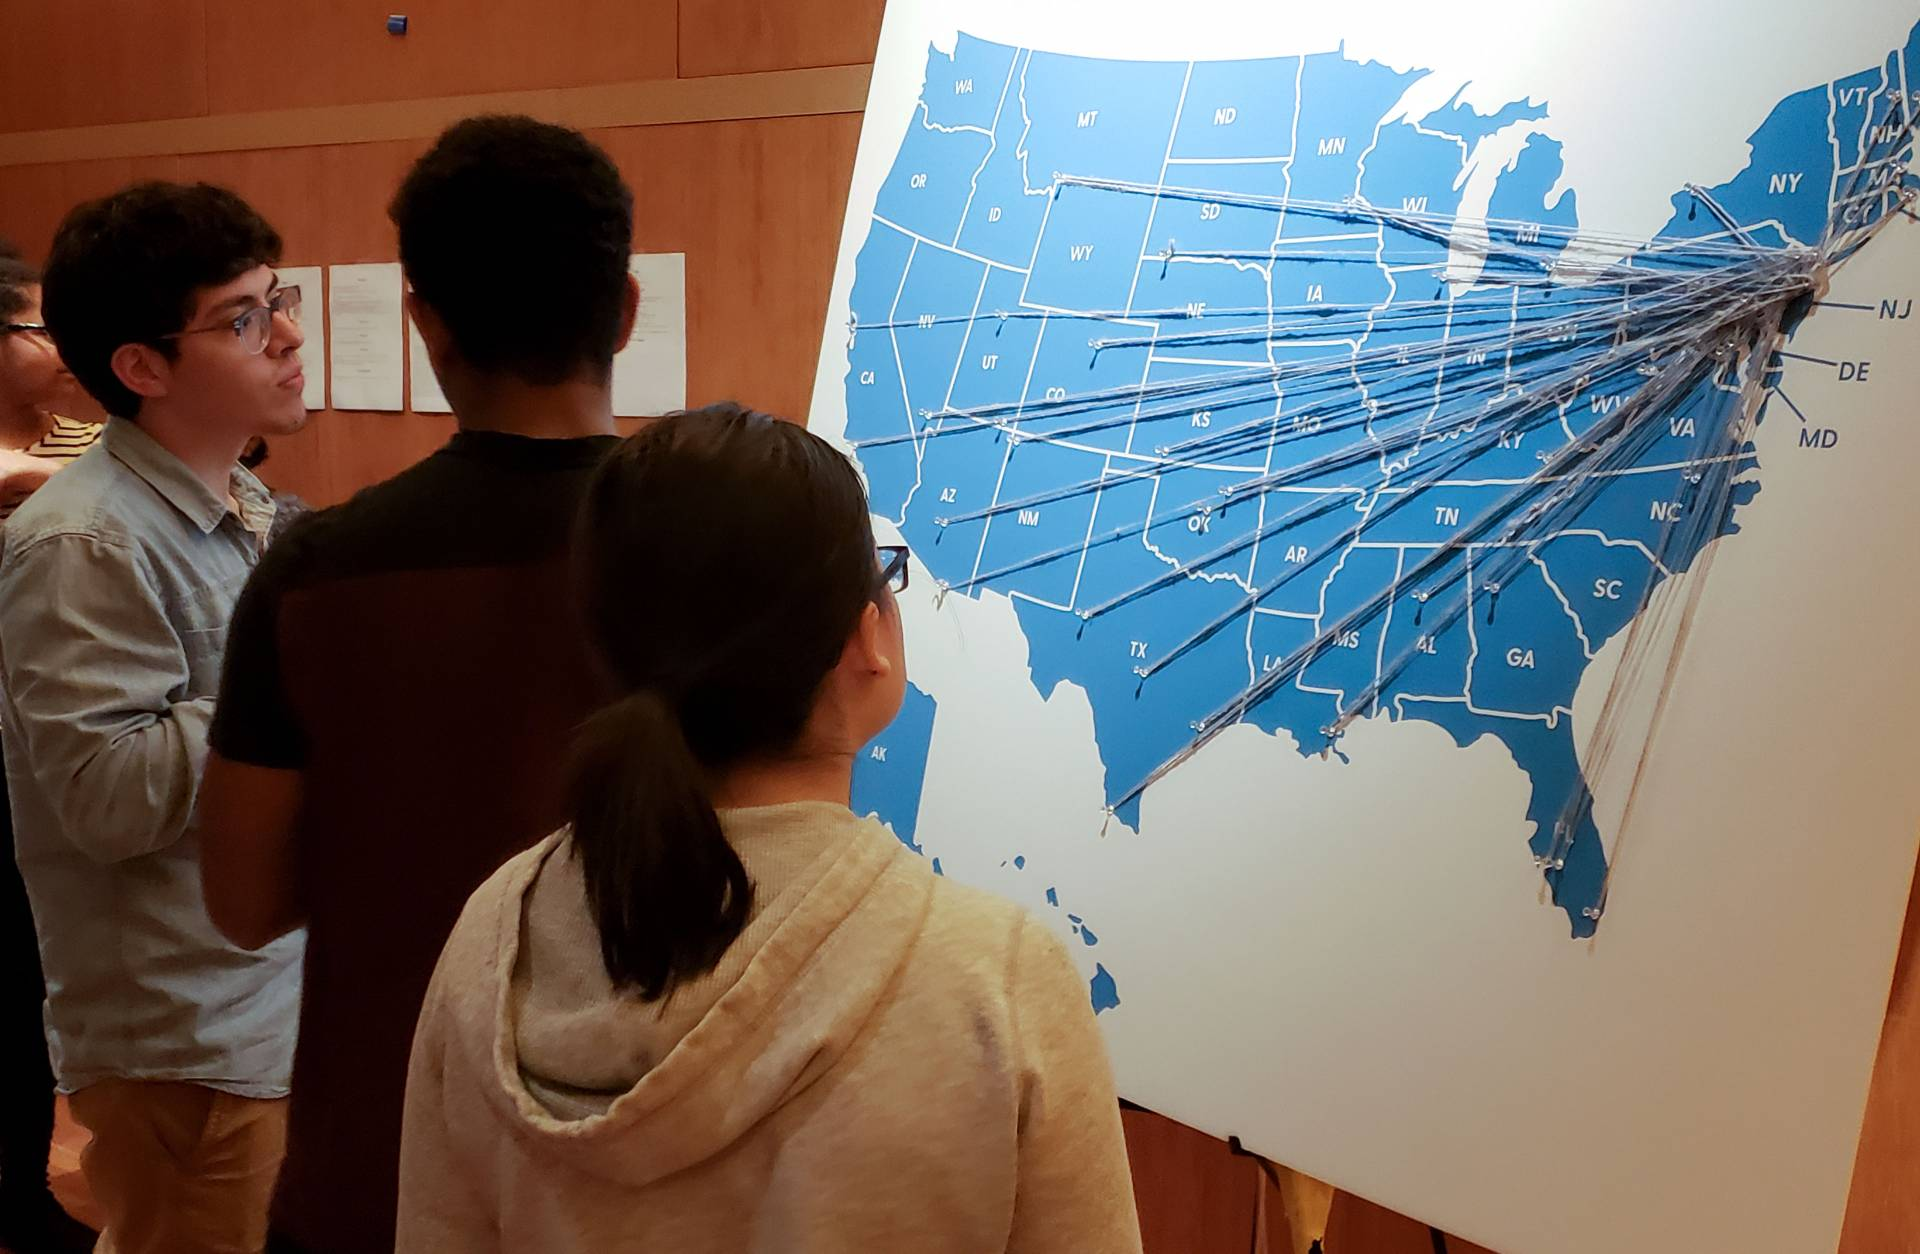 Students looking at map of US with strings and pins marking Breakout Princeton trip locations